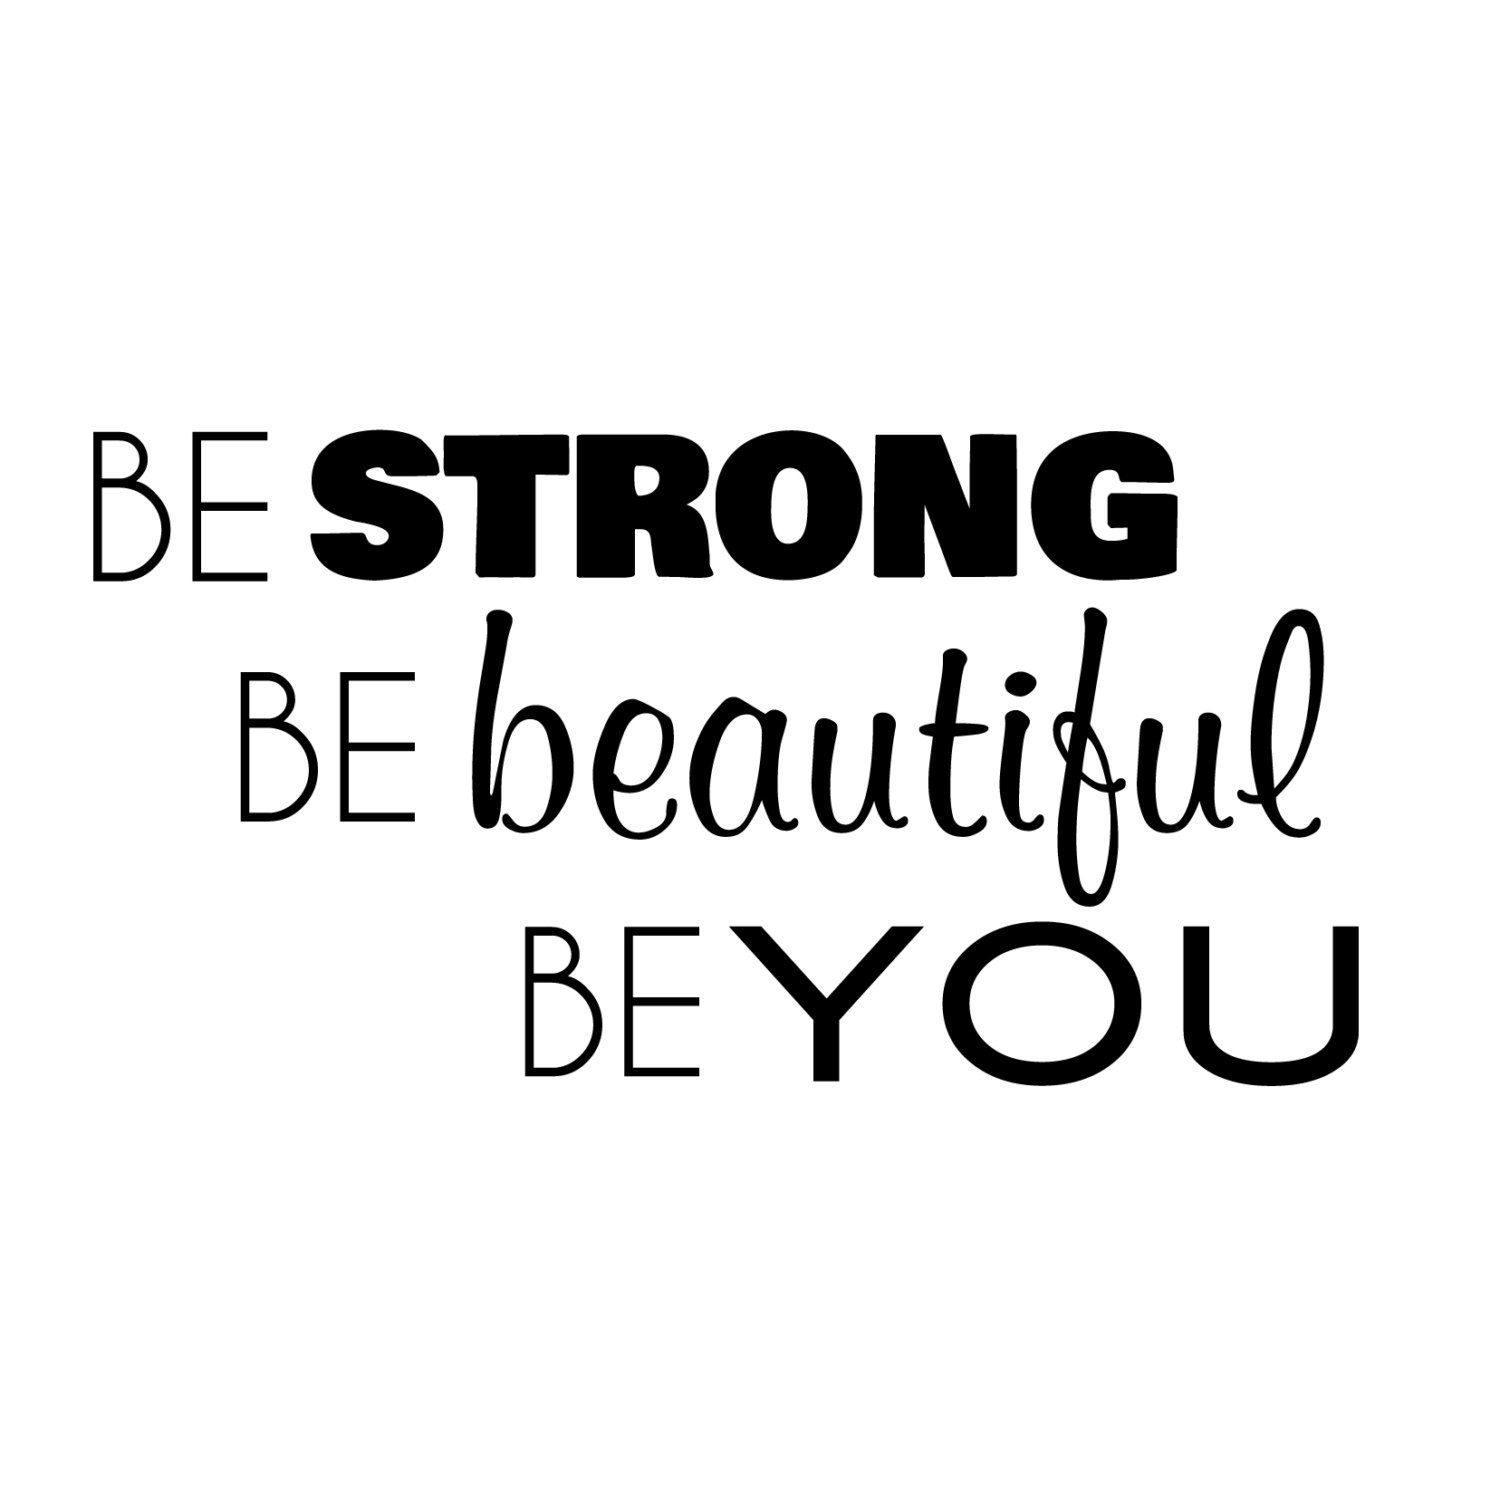 Be Strong Beautiful You Quote - Wall Decal Custom Vinyl Art Stickers for Homes, Schools, Offices, Interior Designers